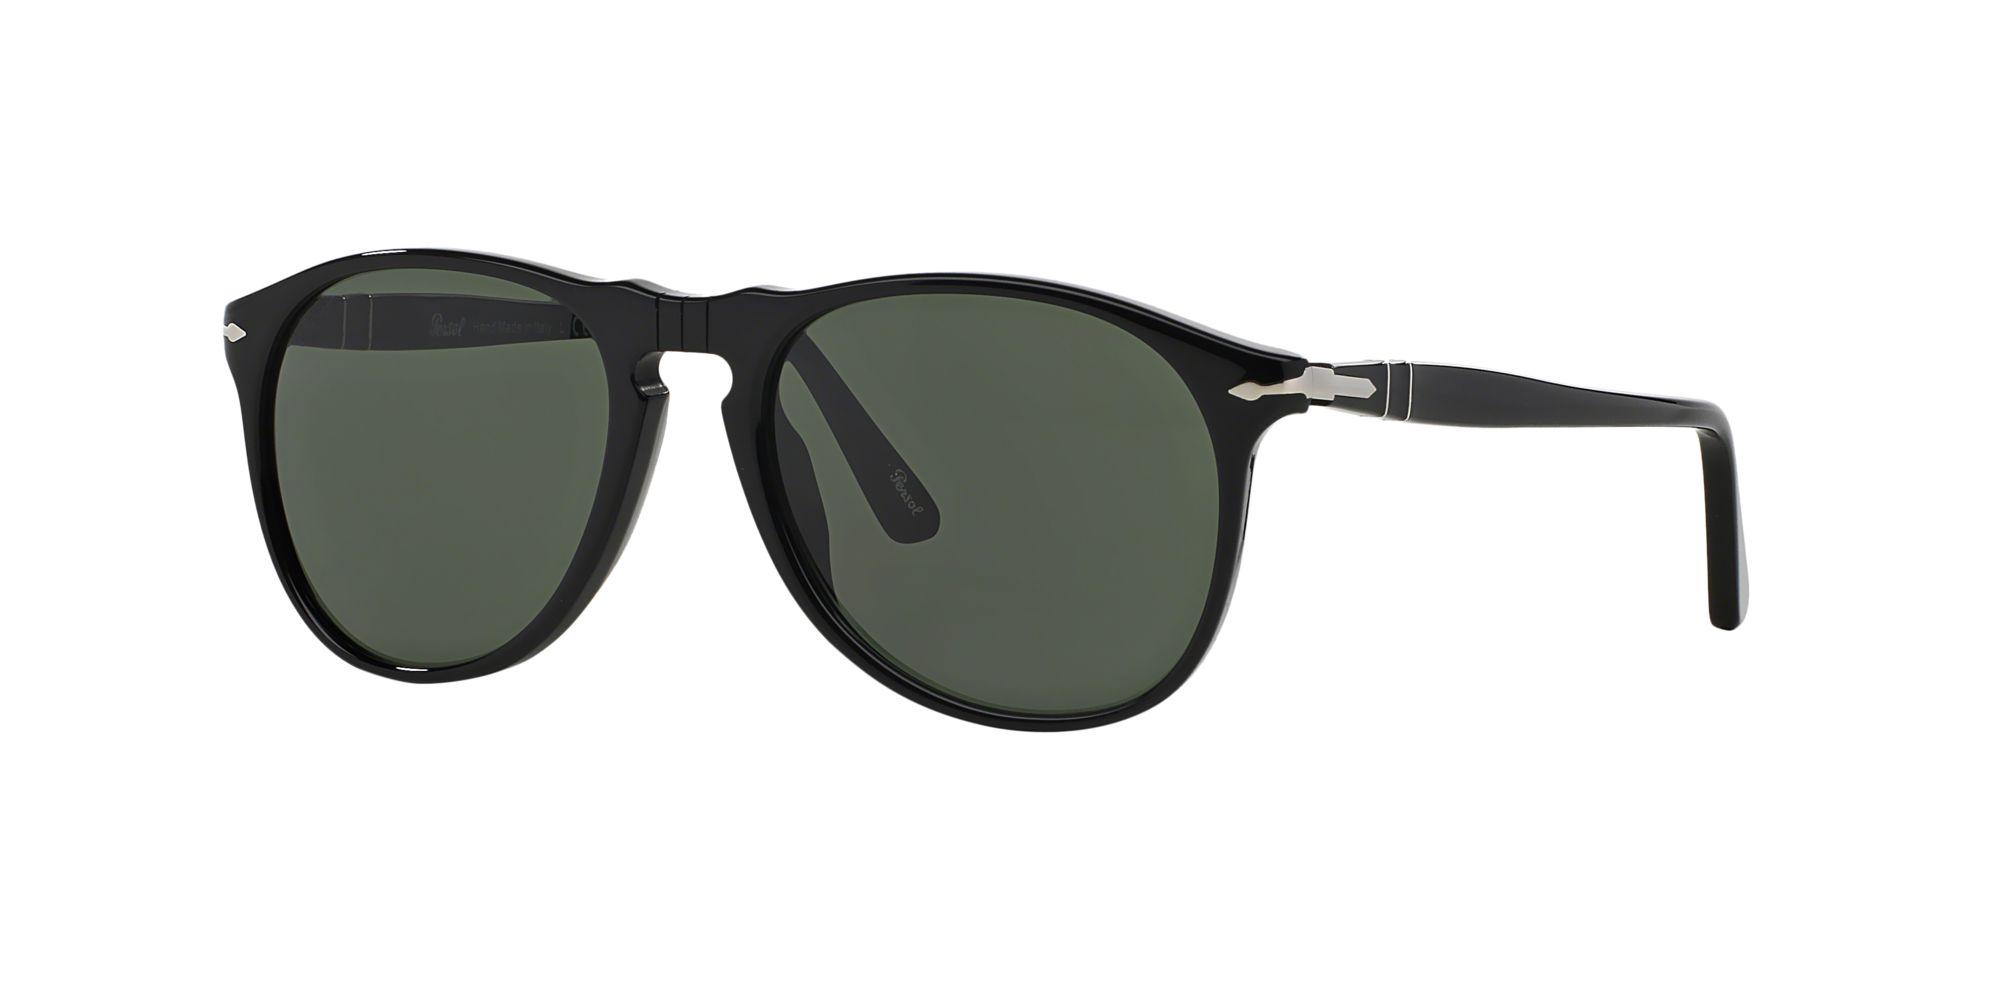 aa54b18157 Sun PO9649S - Black - Green - Acetate